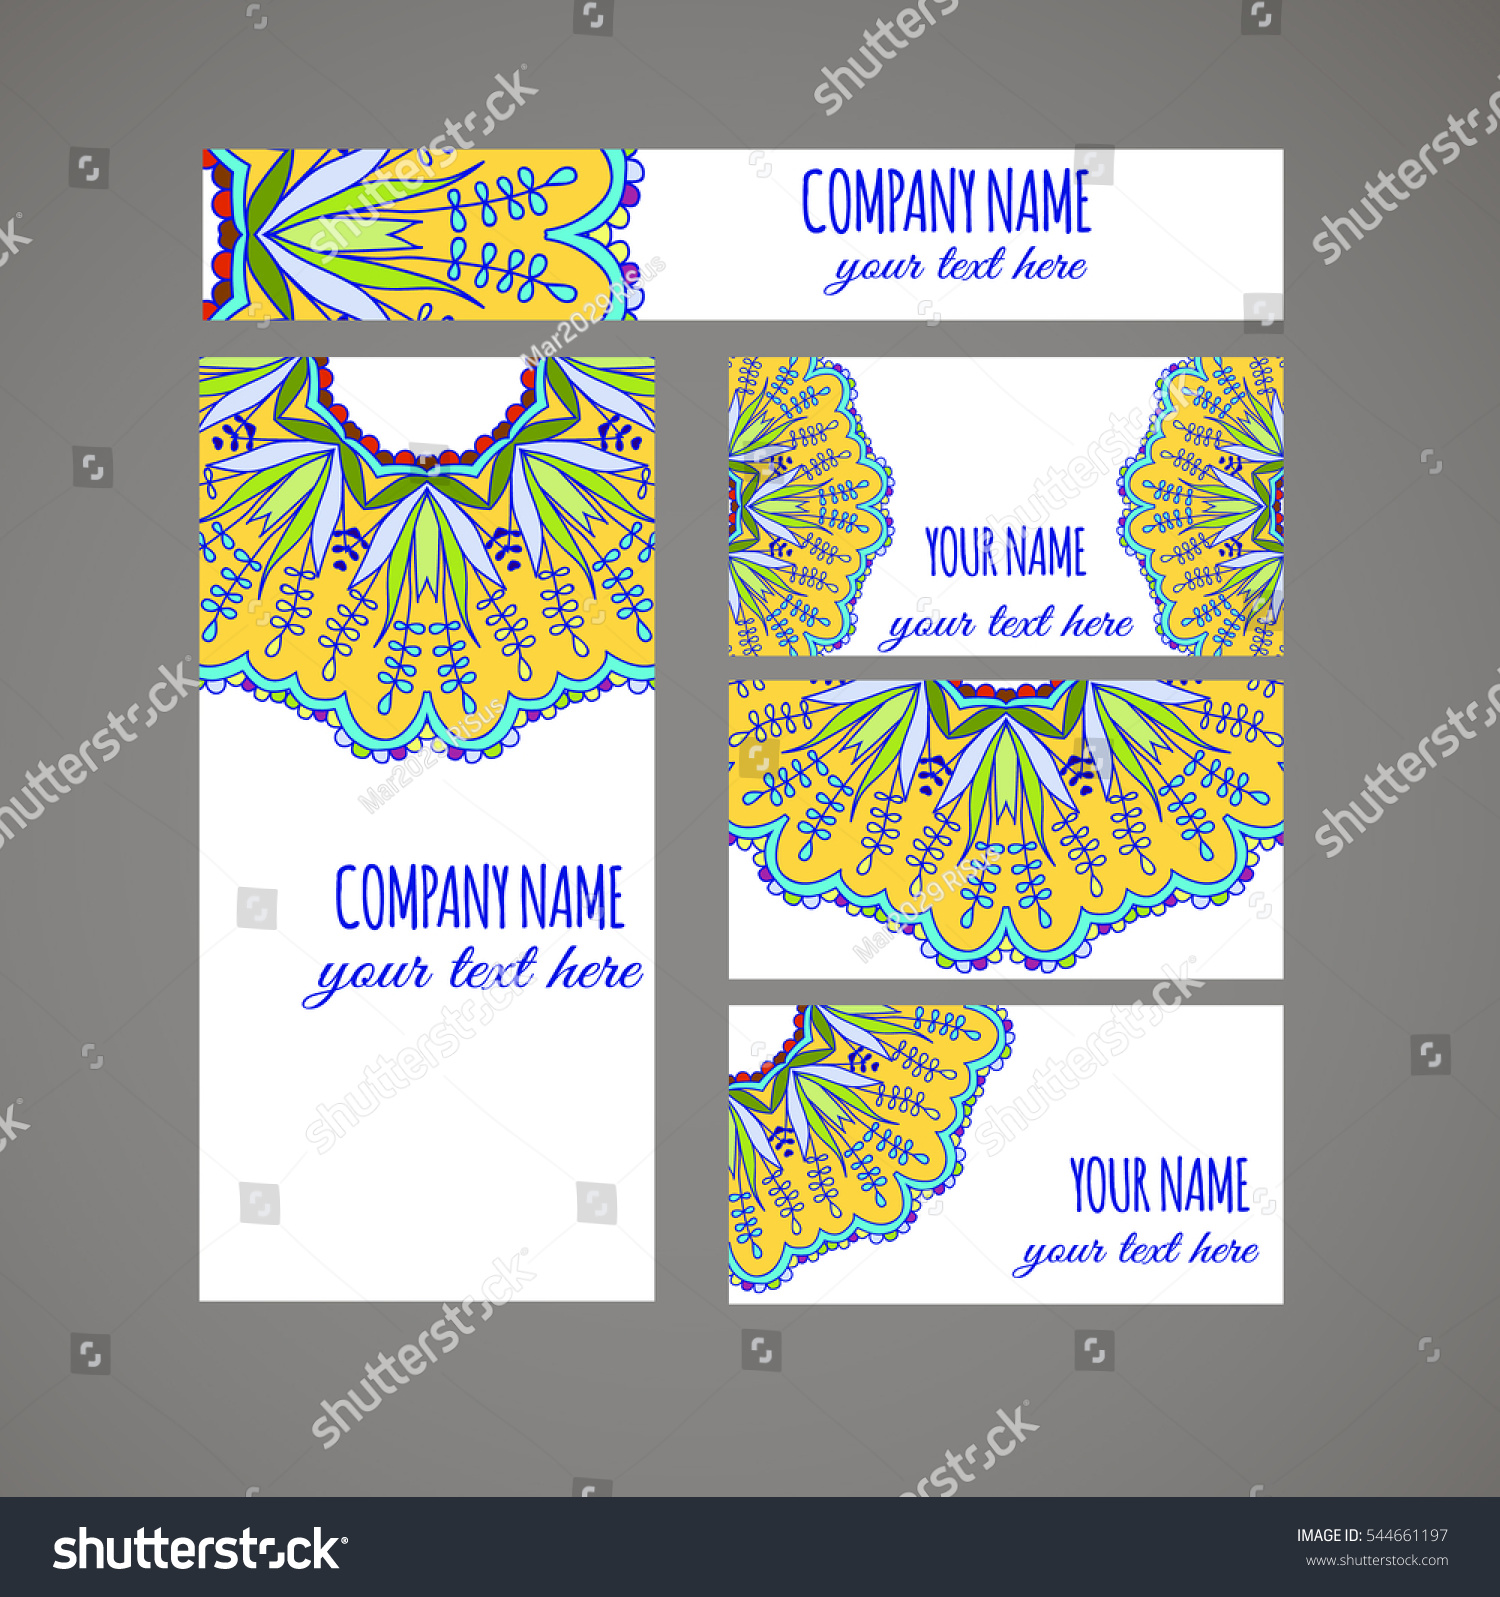 Design Templates Business Cards Flyers Invitations Stock Photo ...